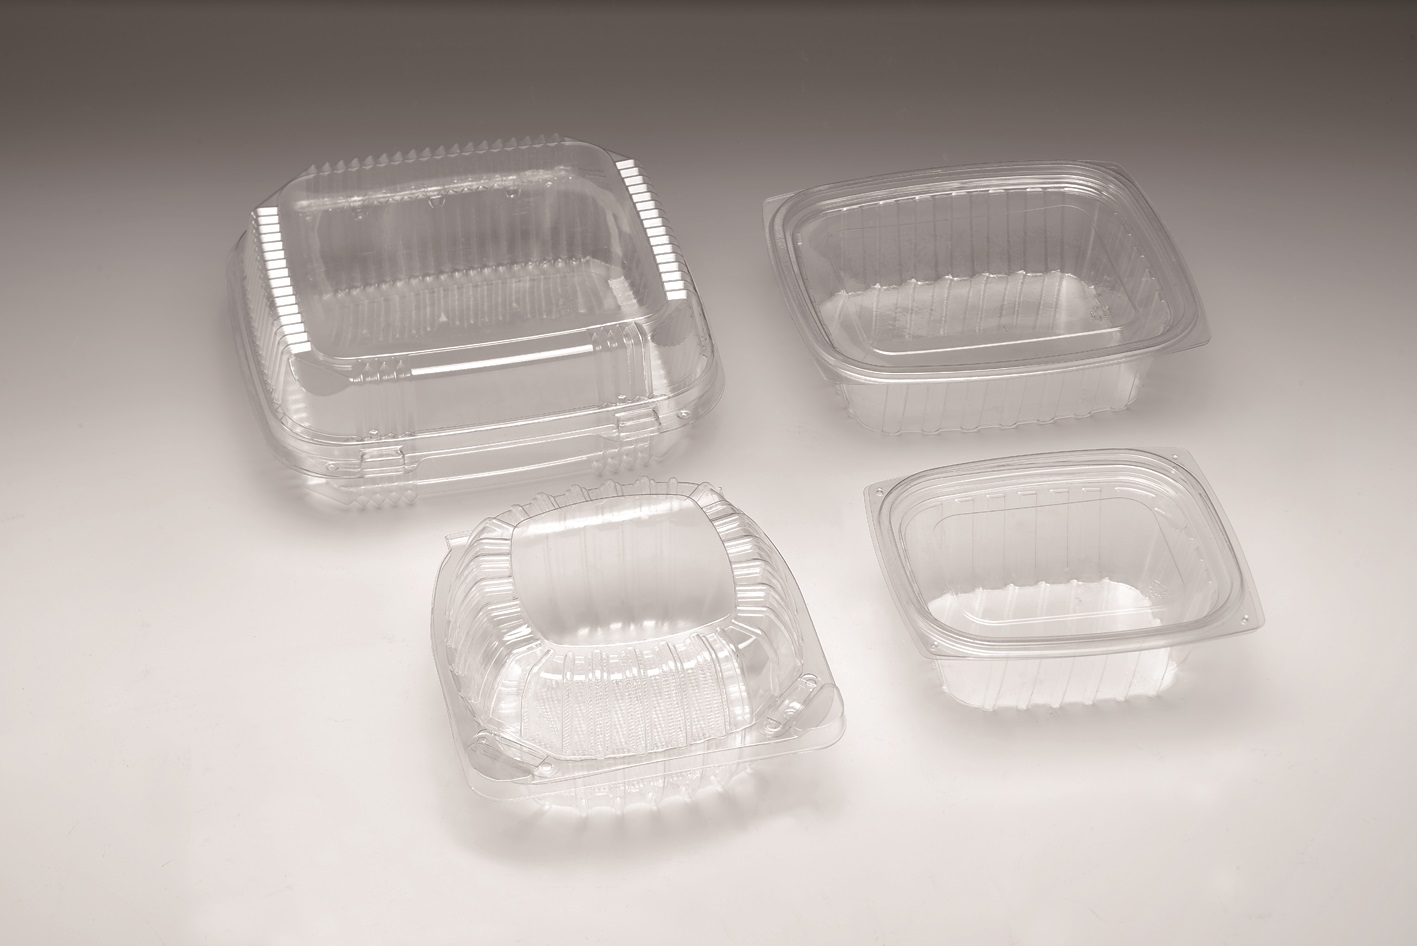 Take Out Containers.jpg